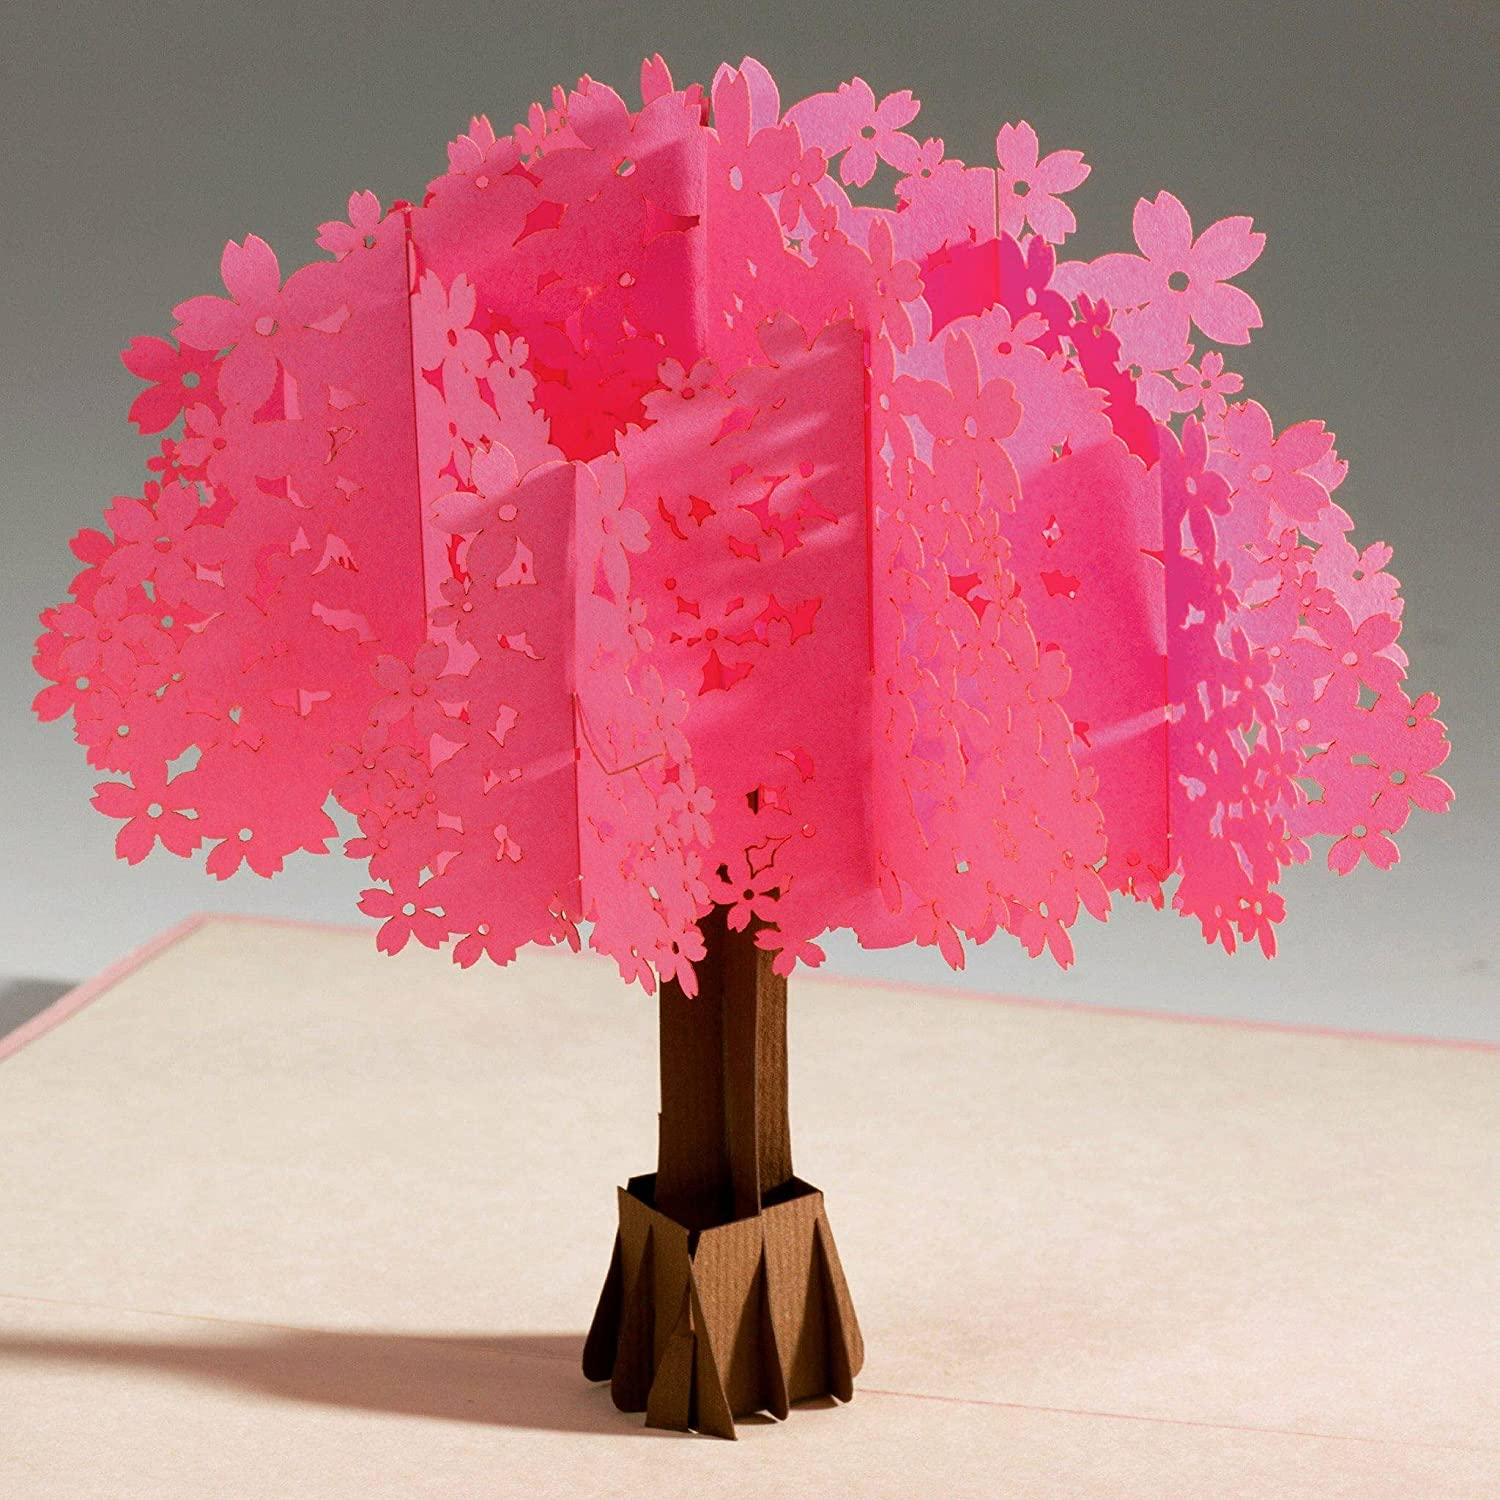 Unique & Beautiful 3D love pop up greeting card & Envelope from PopKard. Surprise with cherry blossom to celebrate Anniversary, Birthday, New Year, ...